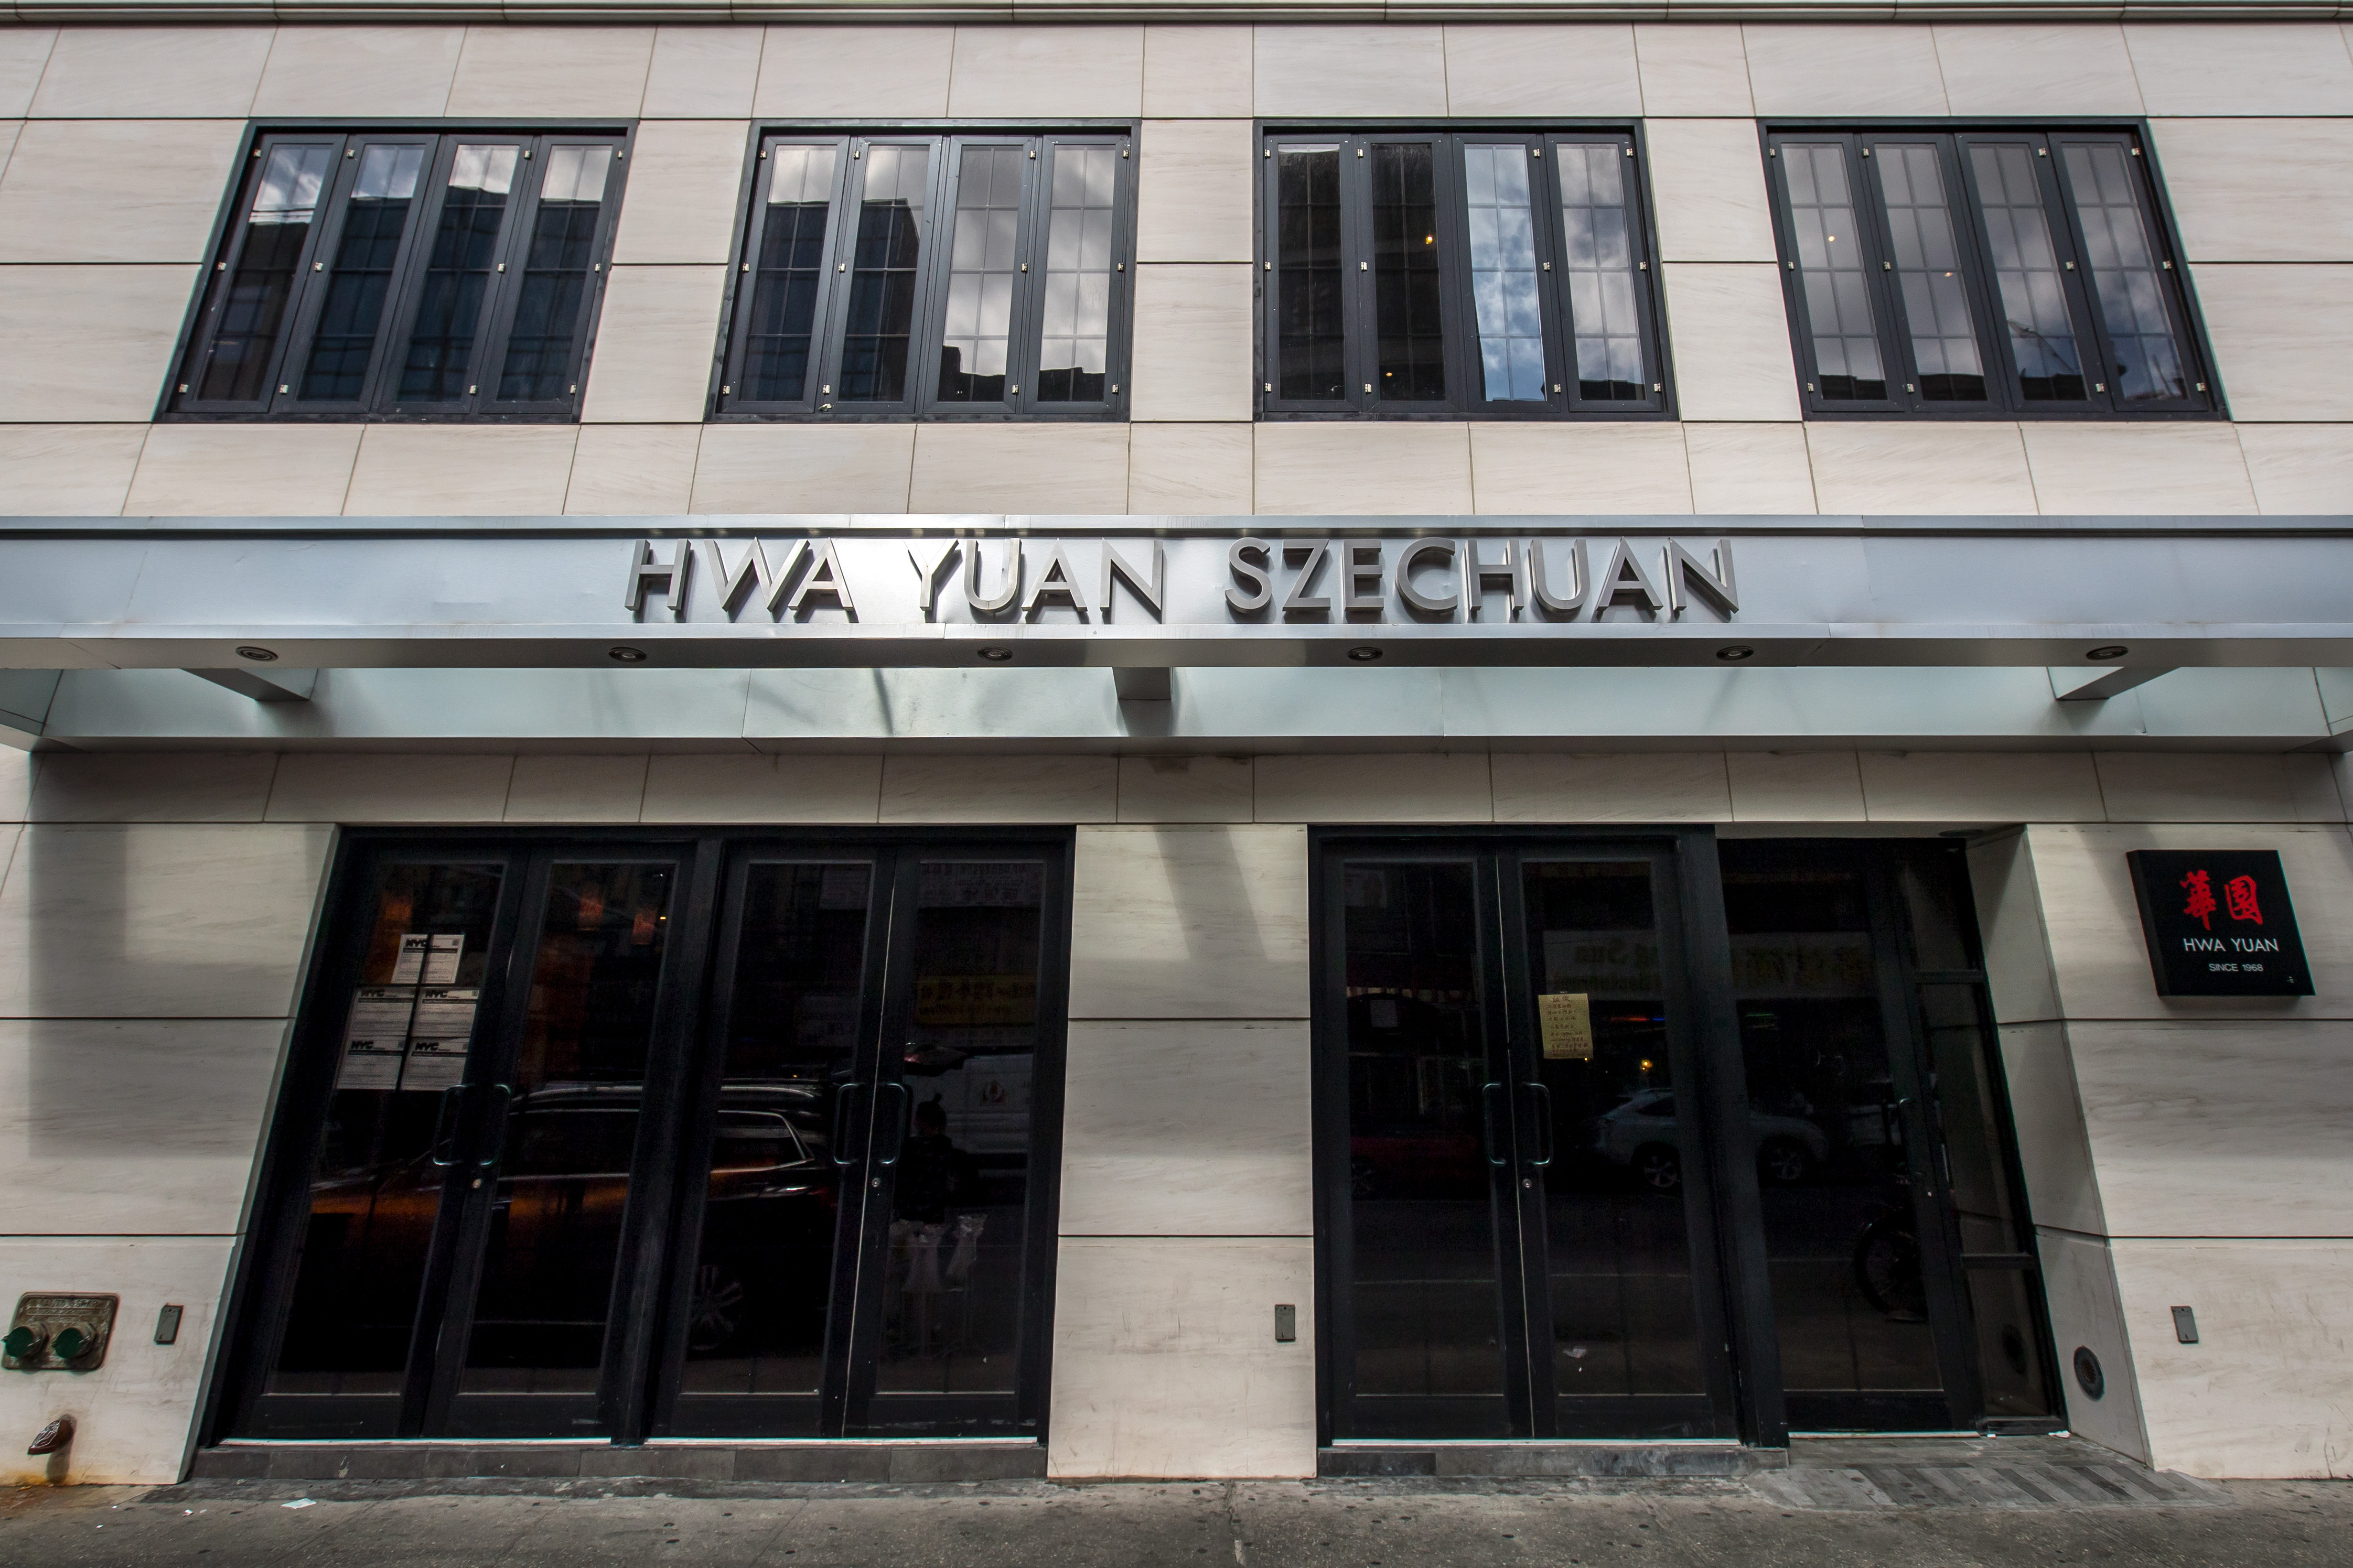 An exterior photo of Sichuan restaurant Hwa Yuan which shows a white stone exterior and a silver sign that bears the name.